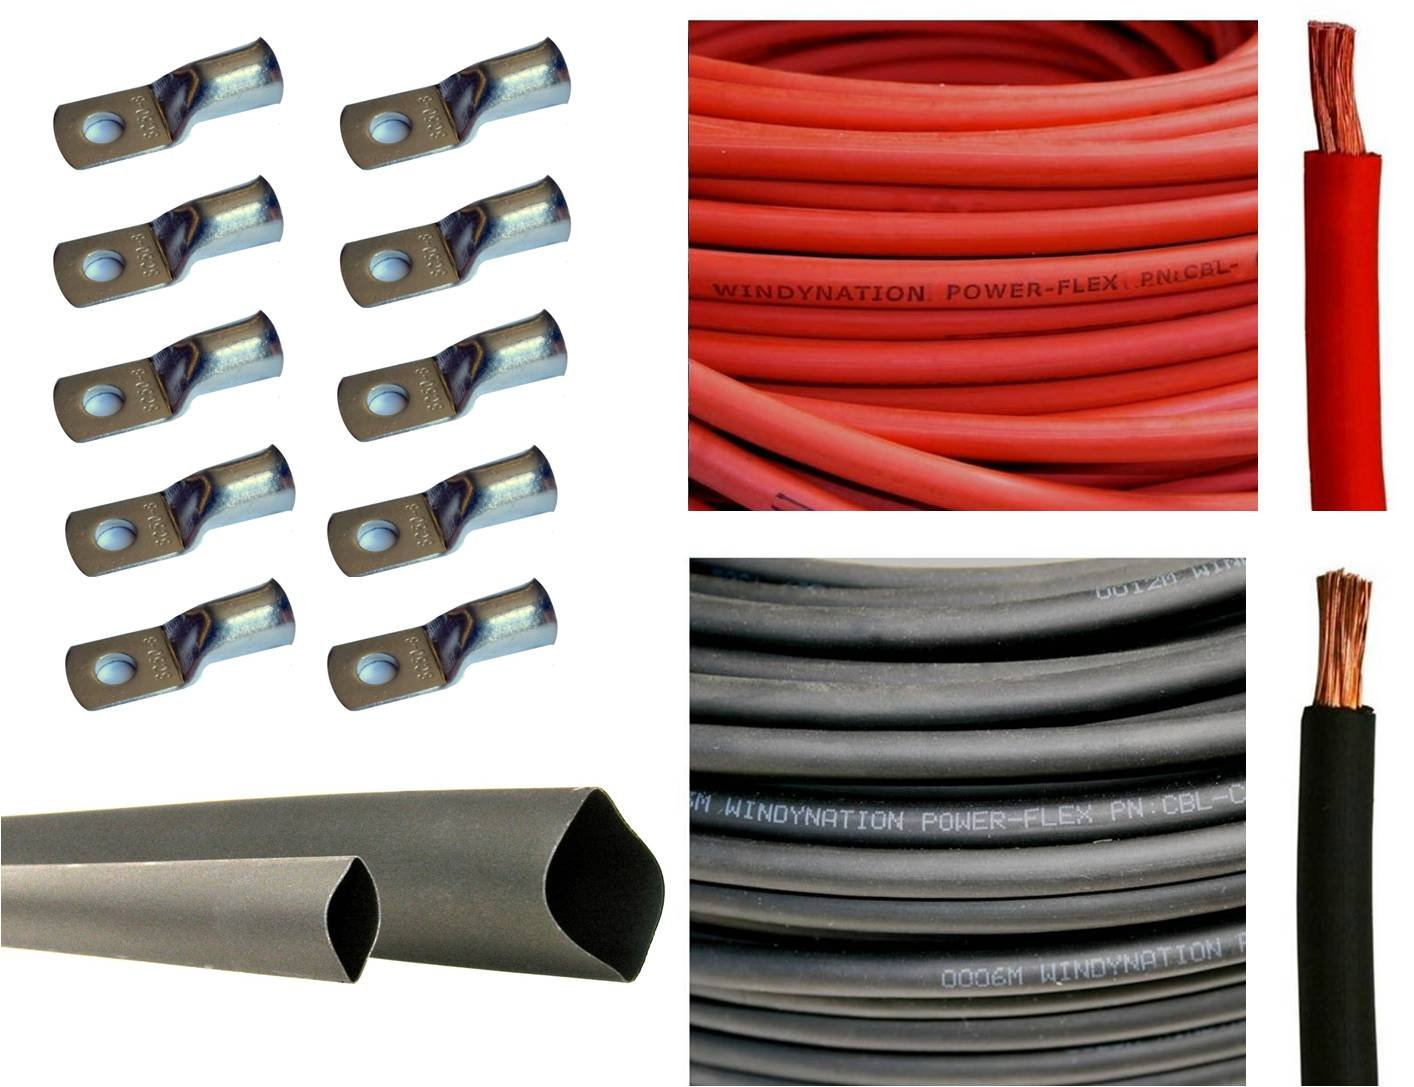 5 Feet Black Welding Battery Pure Copper Flexible Cable 8 Gauge 8 AWG 5 Feet Red 3 Feet Black Heat Shrink Tubing 10pcs of 3//8 Tinned Copper Cable Lug Terminal Connectors